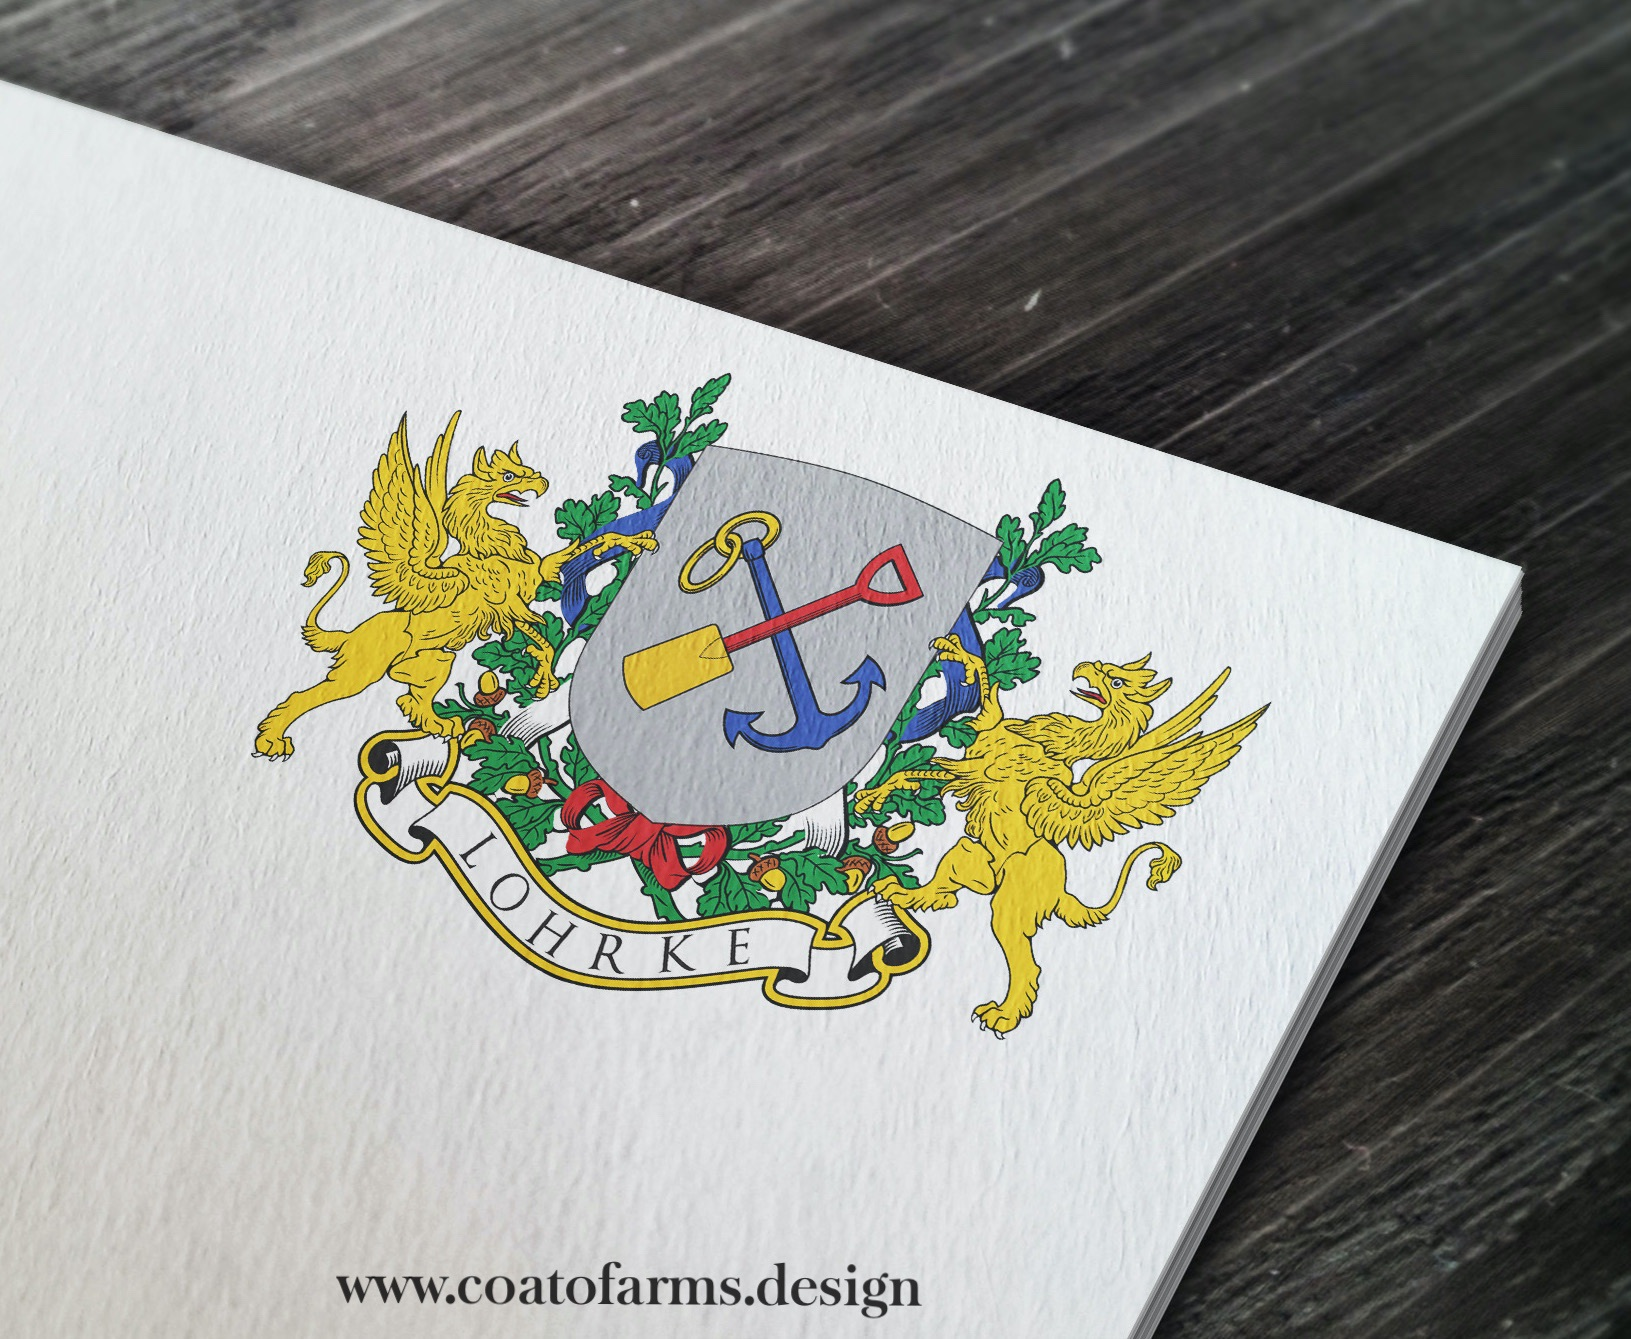 Coat of arms (emblem) I designed for a client's grandparents for their 60th wedding anniversary